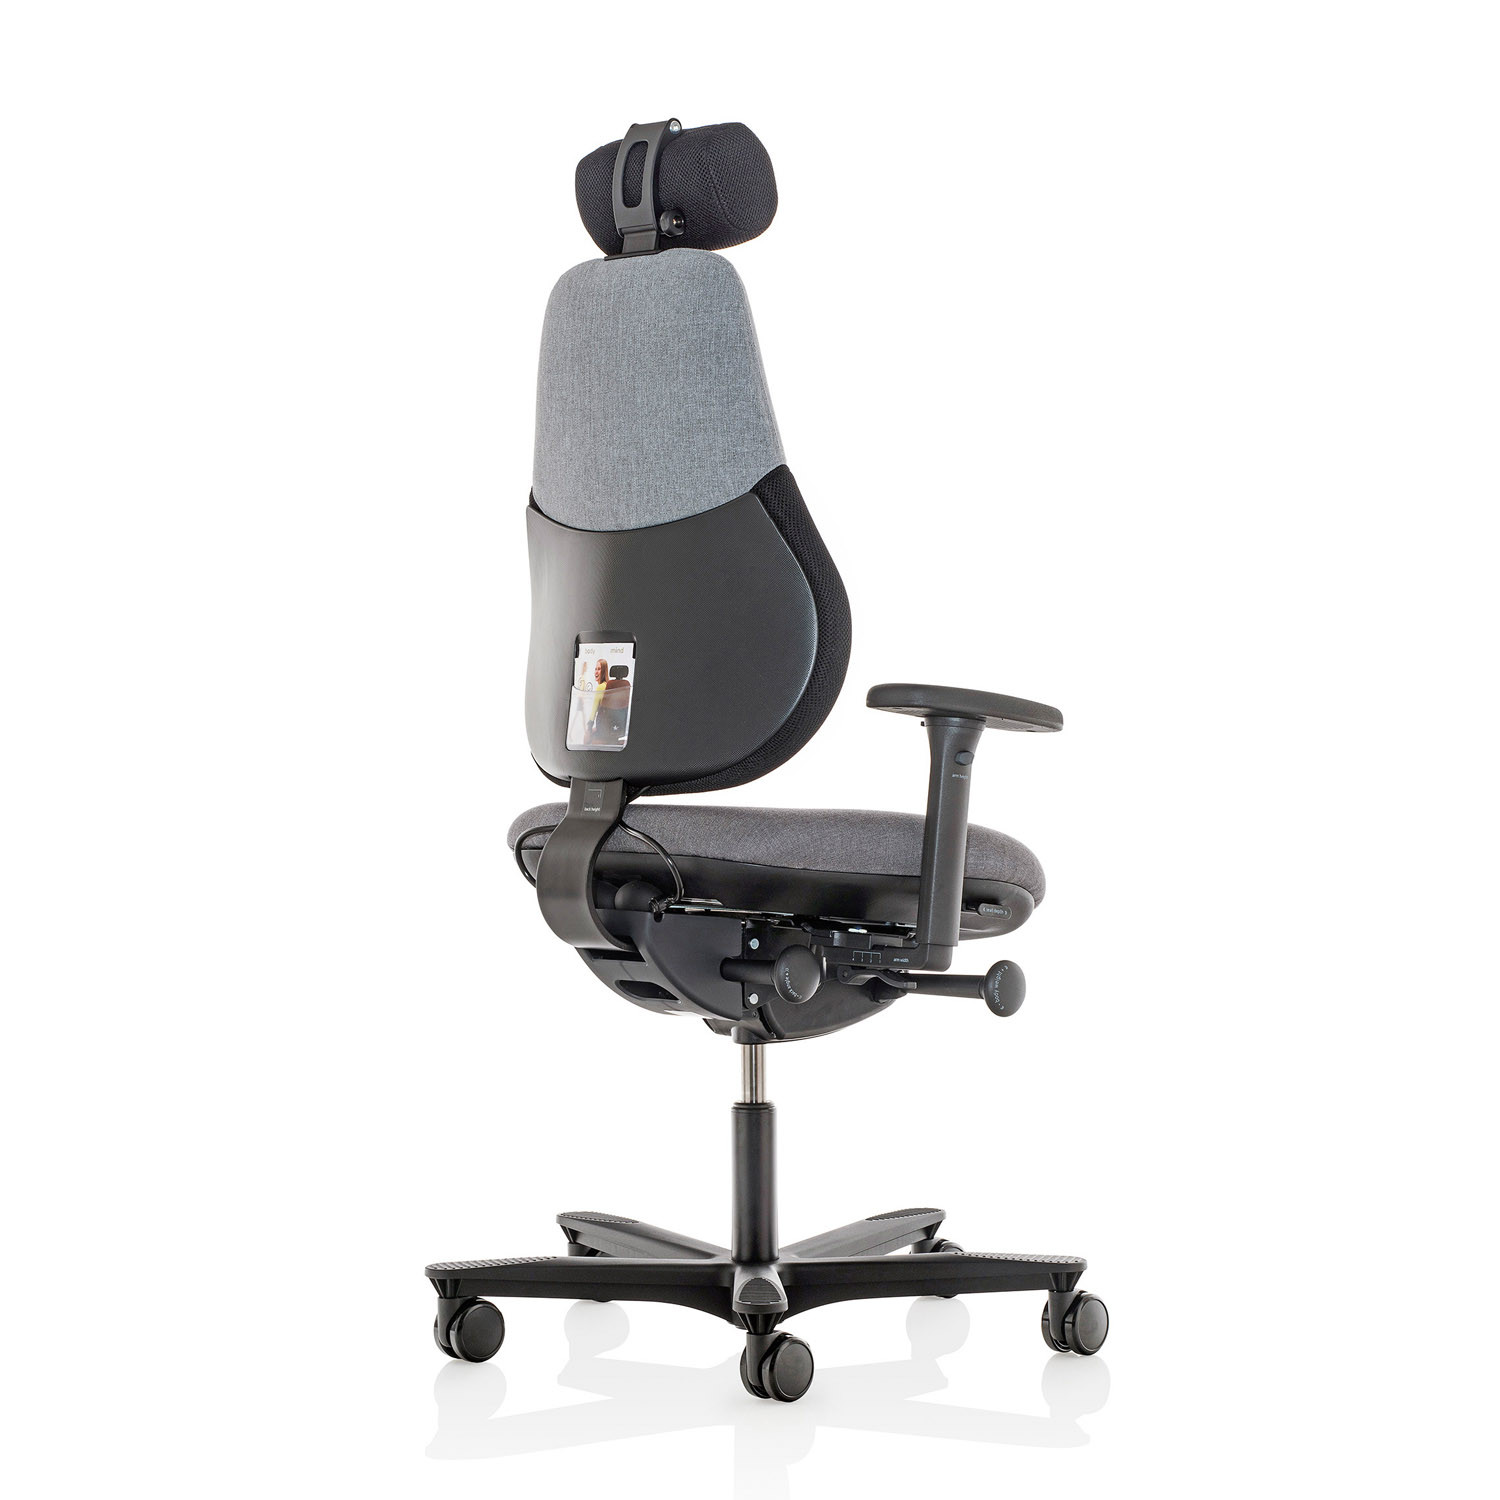 Flo Ergonomic High Back Chair